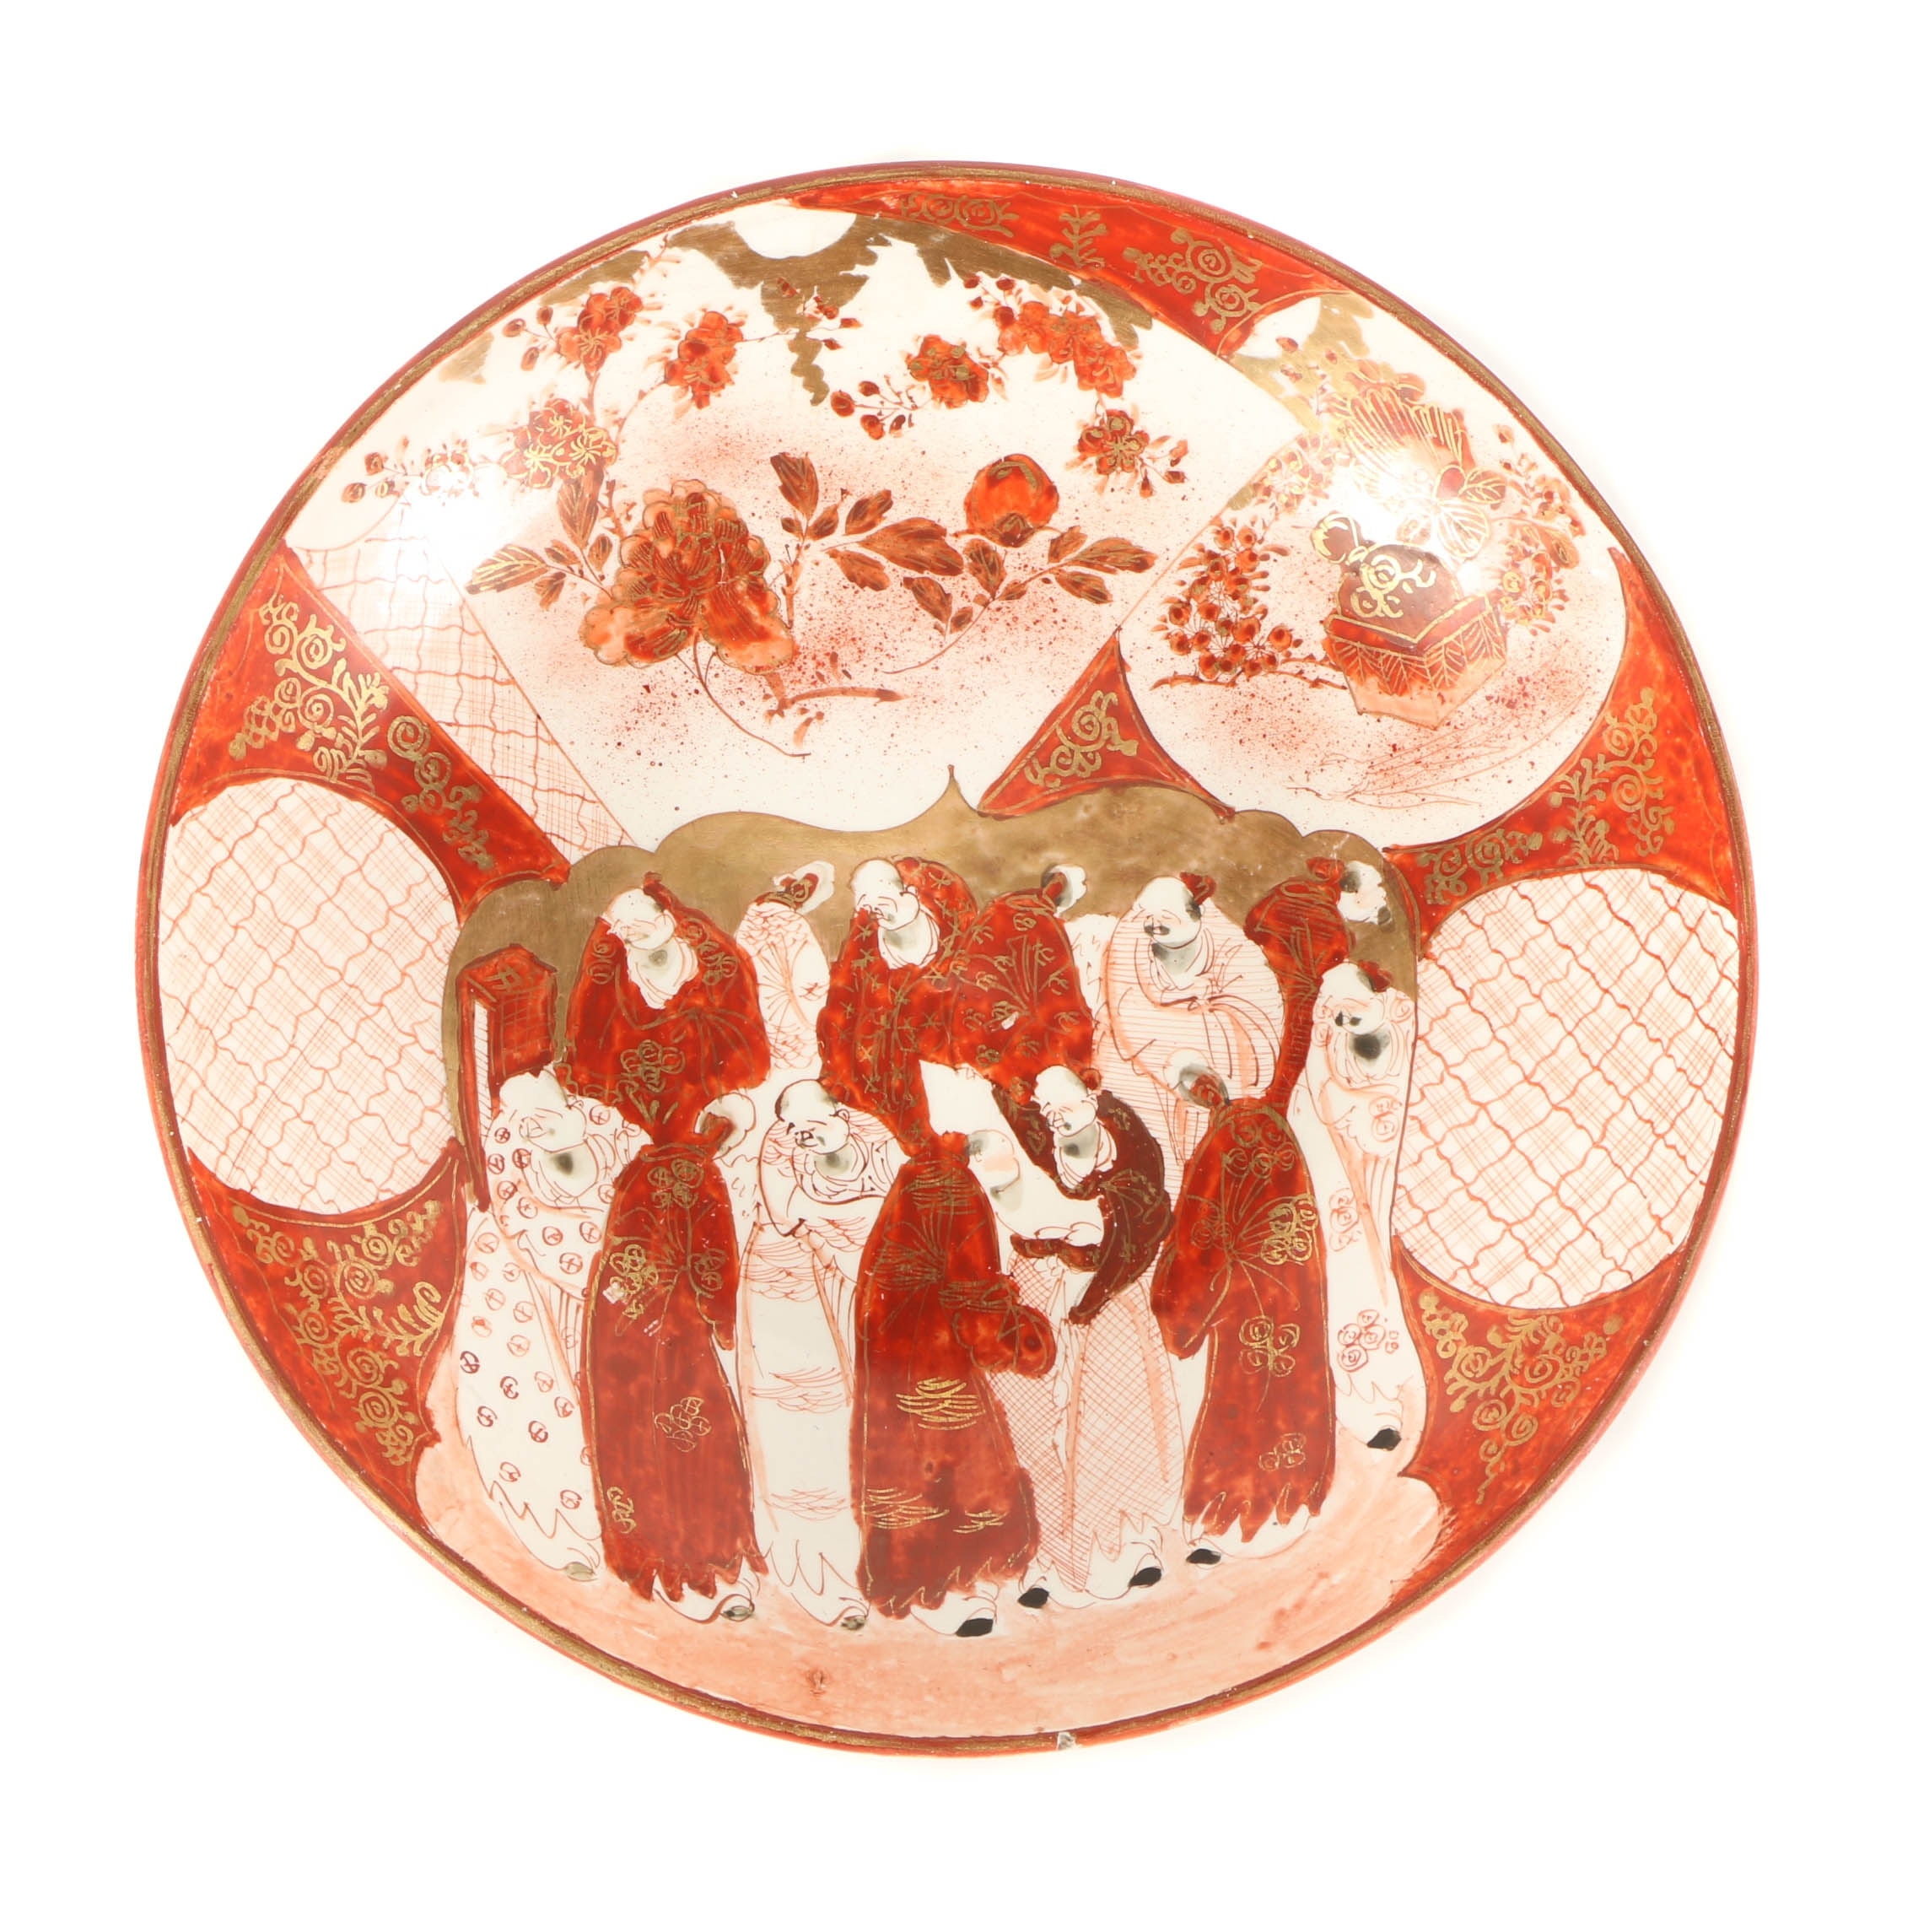 East Asian-Inspired Ceramic Bowl with Glazed Figurative Scene